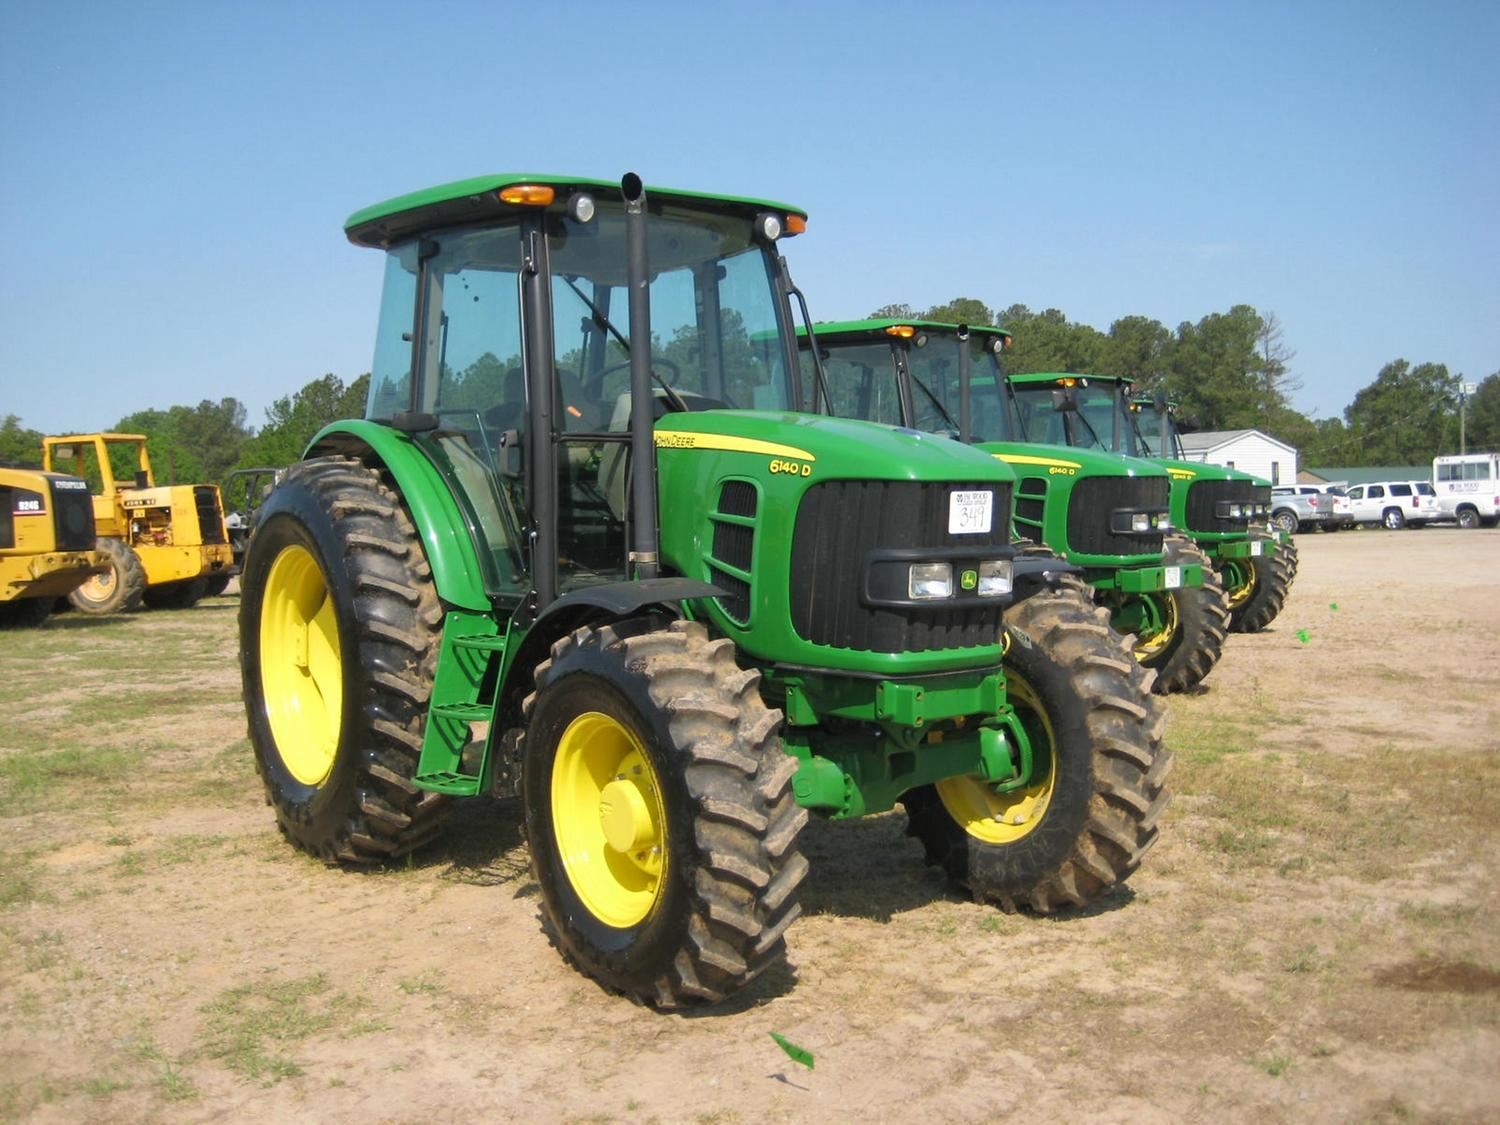 john deere 6140d 4x4 farm tractor j m wood auction company inc. Black Bedroom Furniture Sets. Home Design Ideas